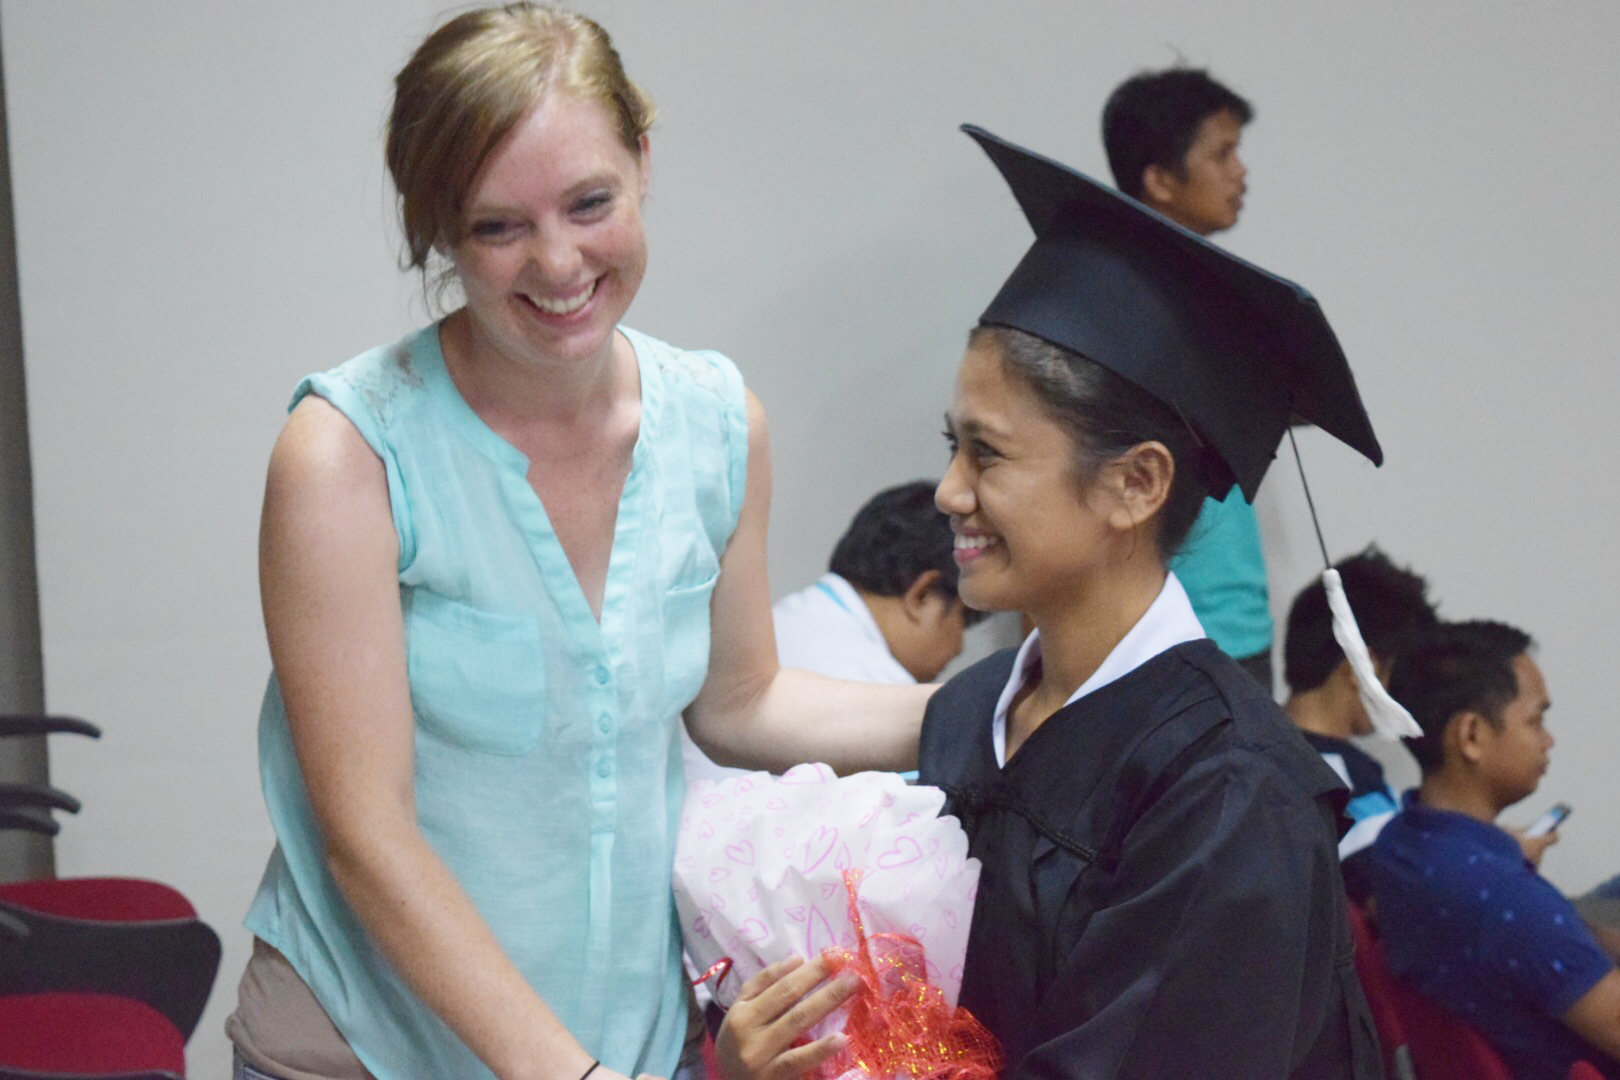 Breann Bennecker and other members of the SEA team traveled to celebrate Jackie's graduation.